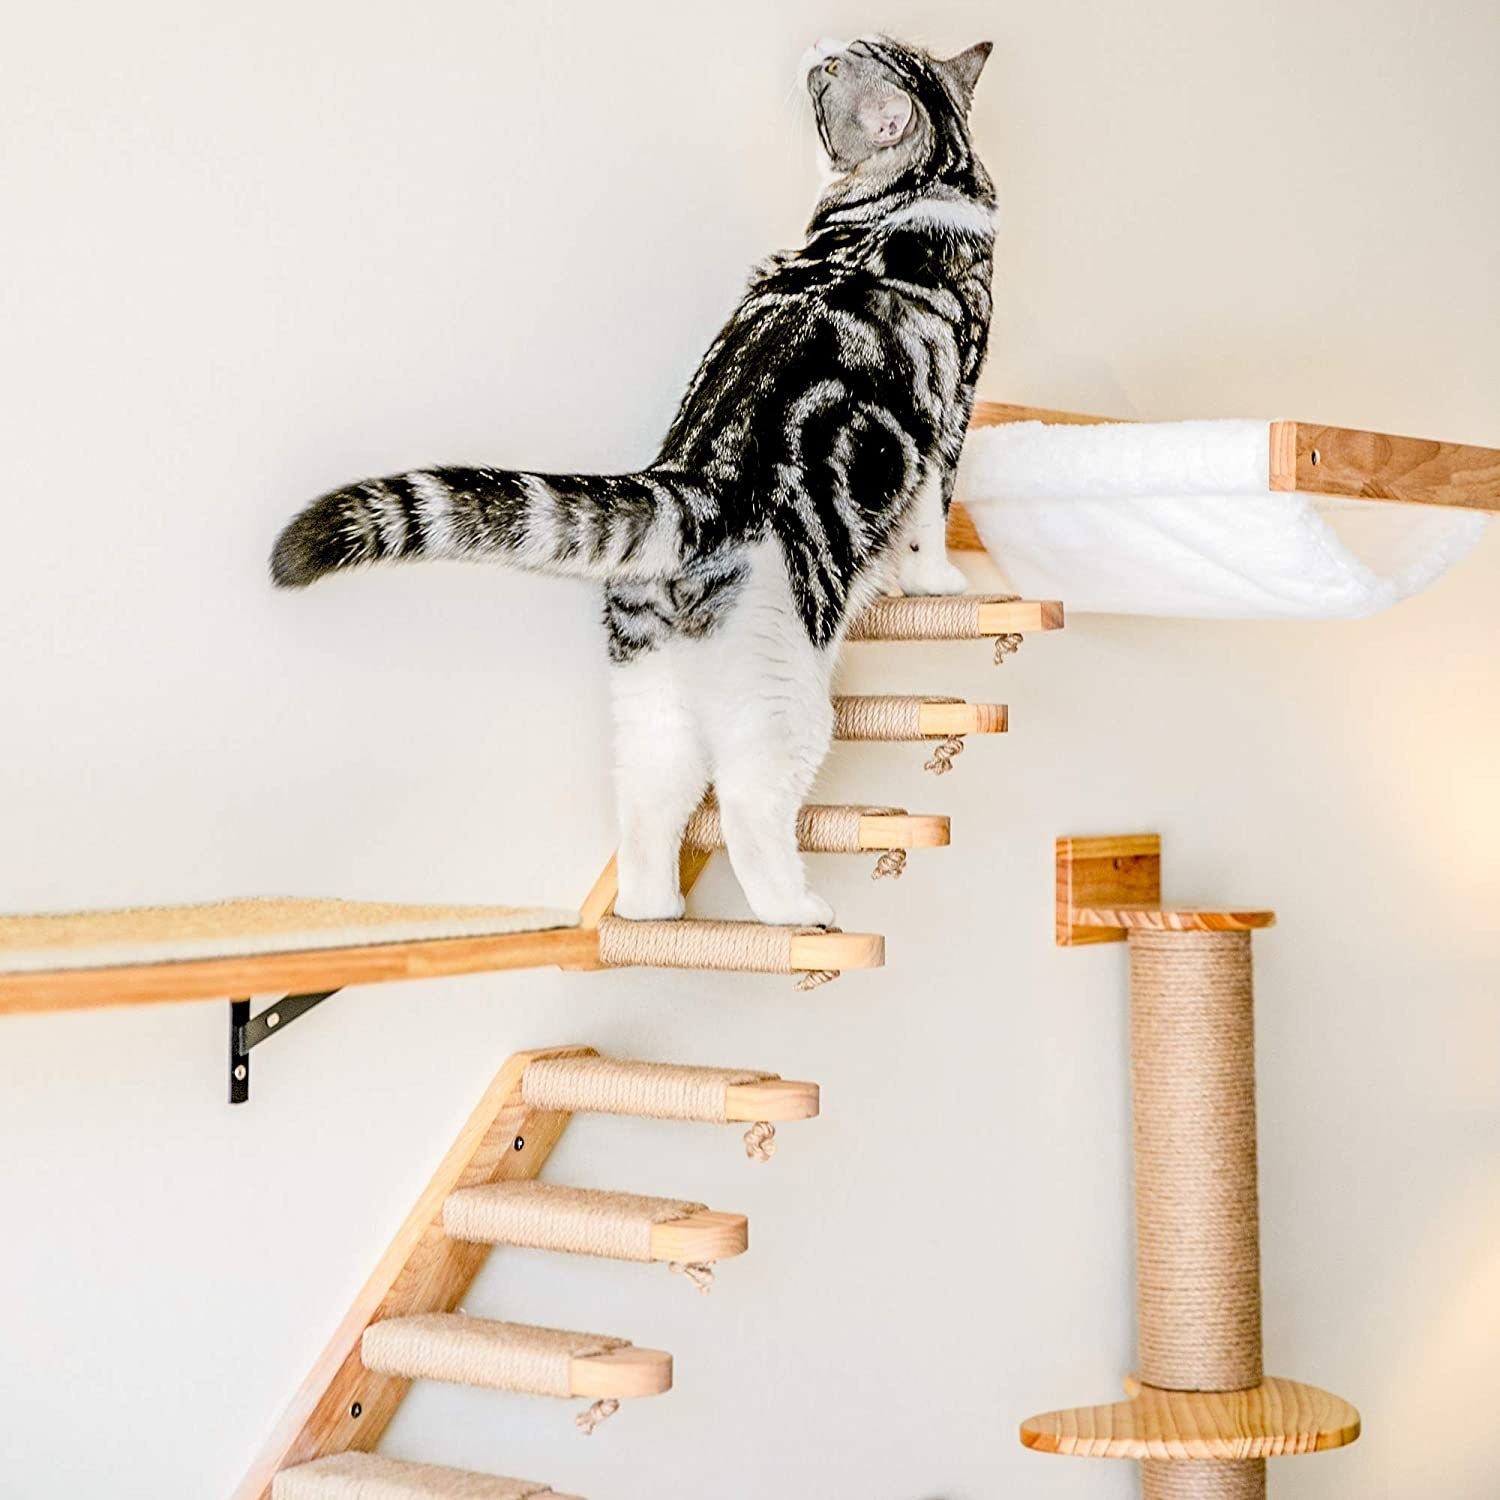 a black and grey striped cat climbing on a wall-mounted set of stairs that has four steps and a scratch pad on each step